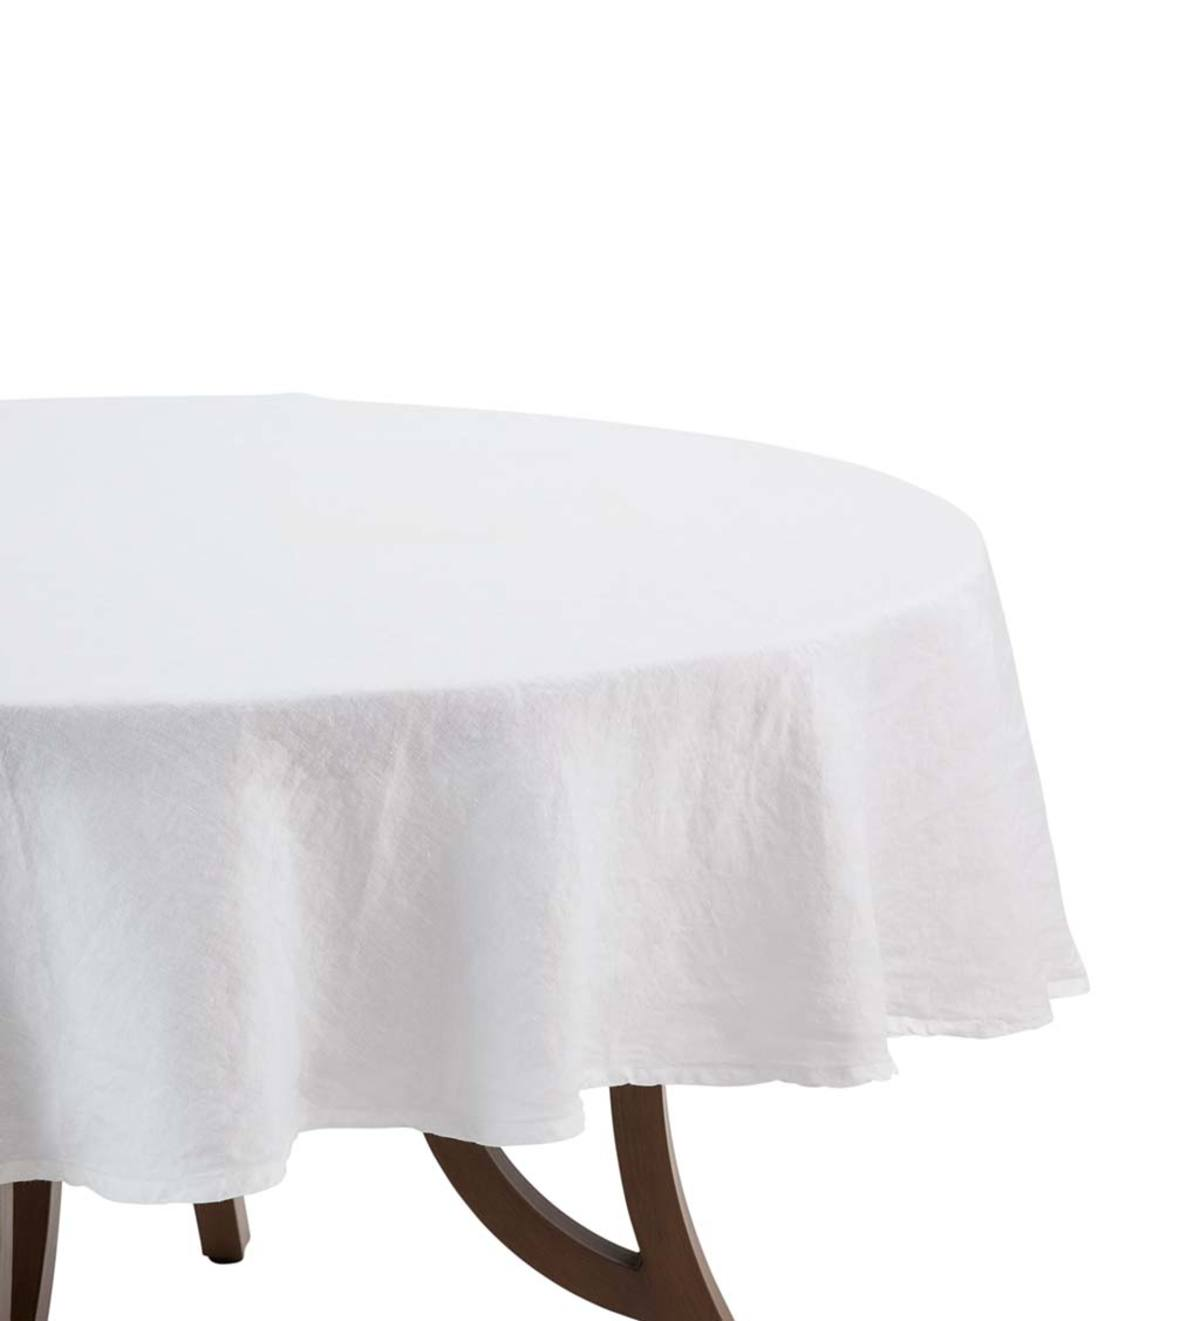 "White Linen Round Tablecloth 90"" - White"